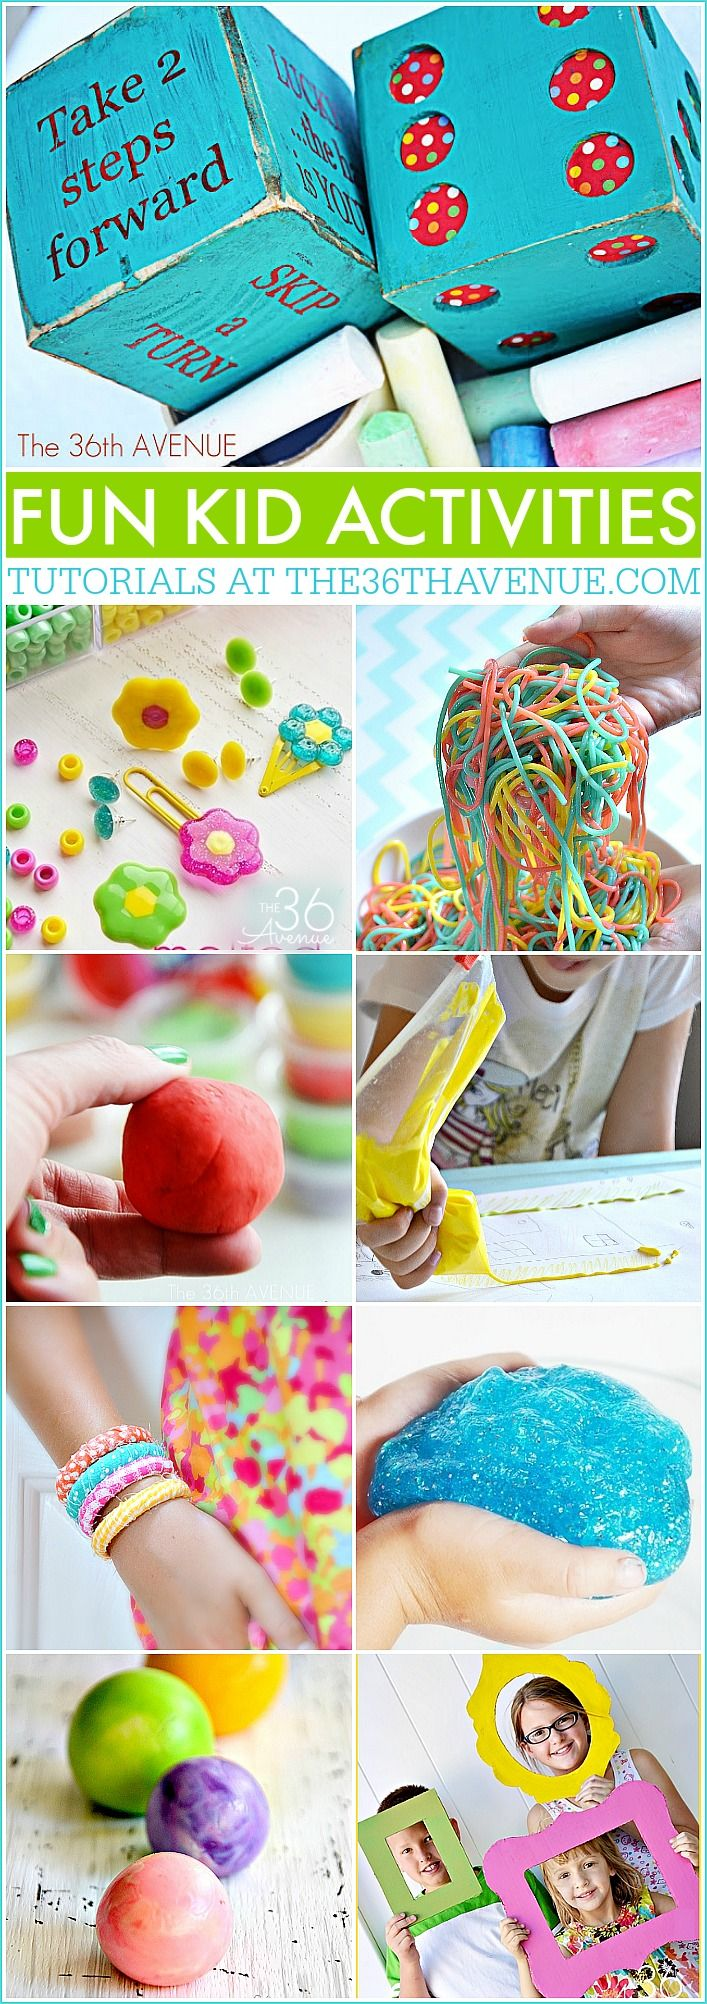 245 Best 6 9 Year Old Crafts And Activities Images On Pinterest inside Craft Ideas For 89 Year Olds